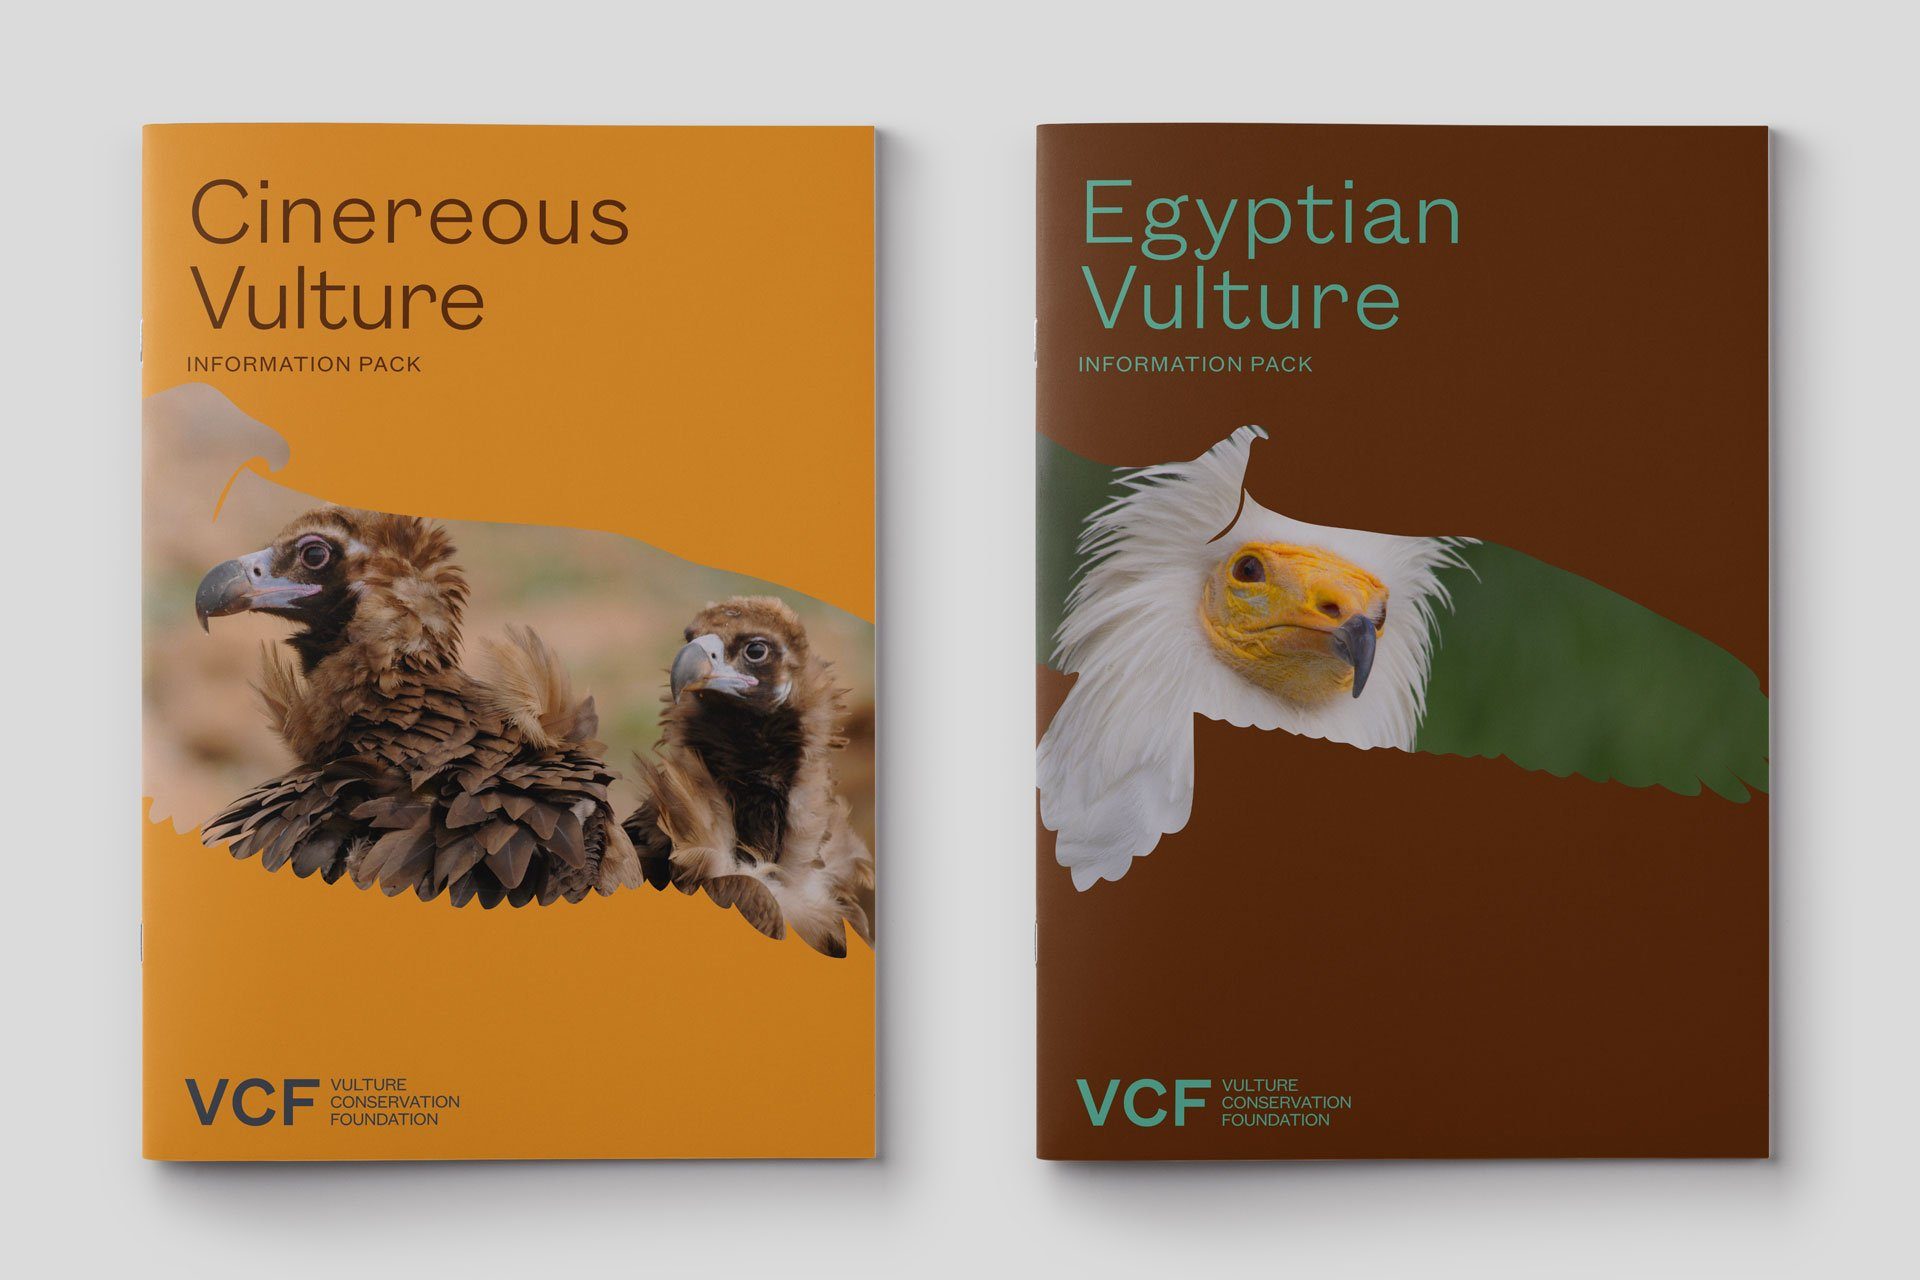 Vulture Conservation Foundation 8